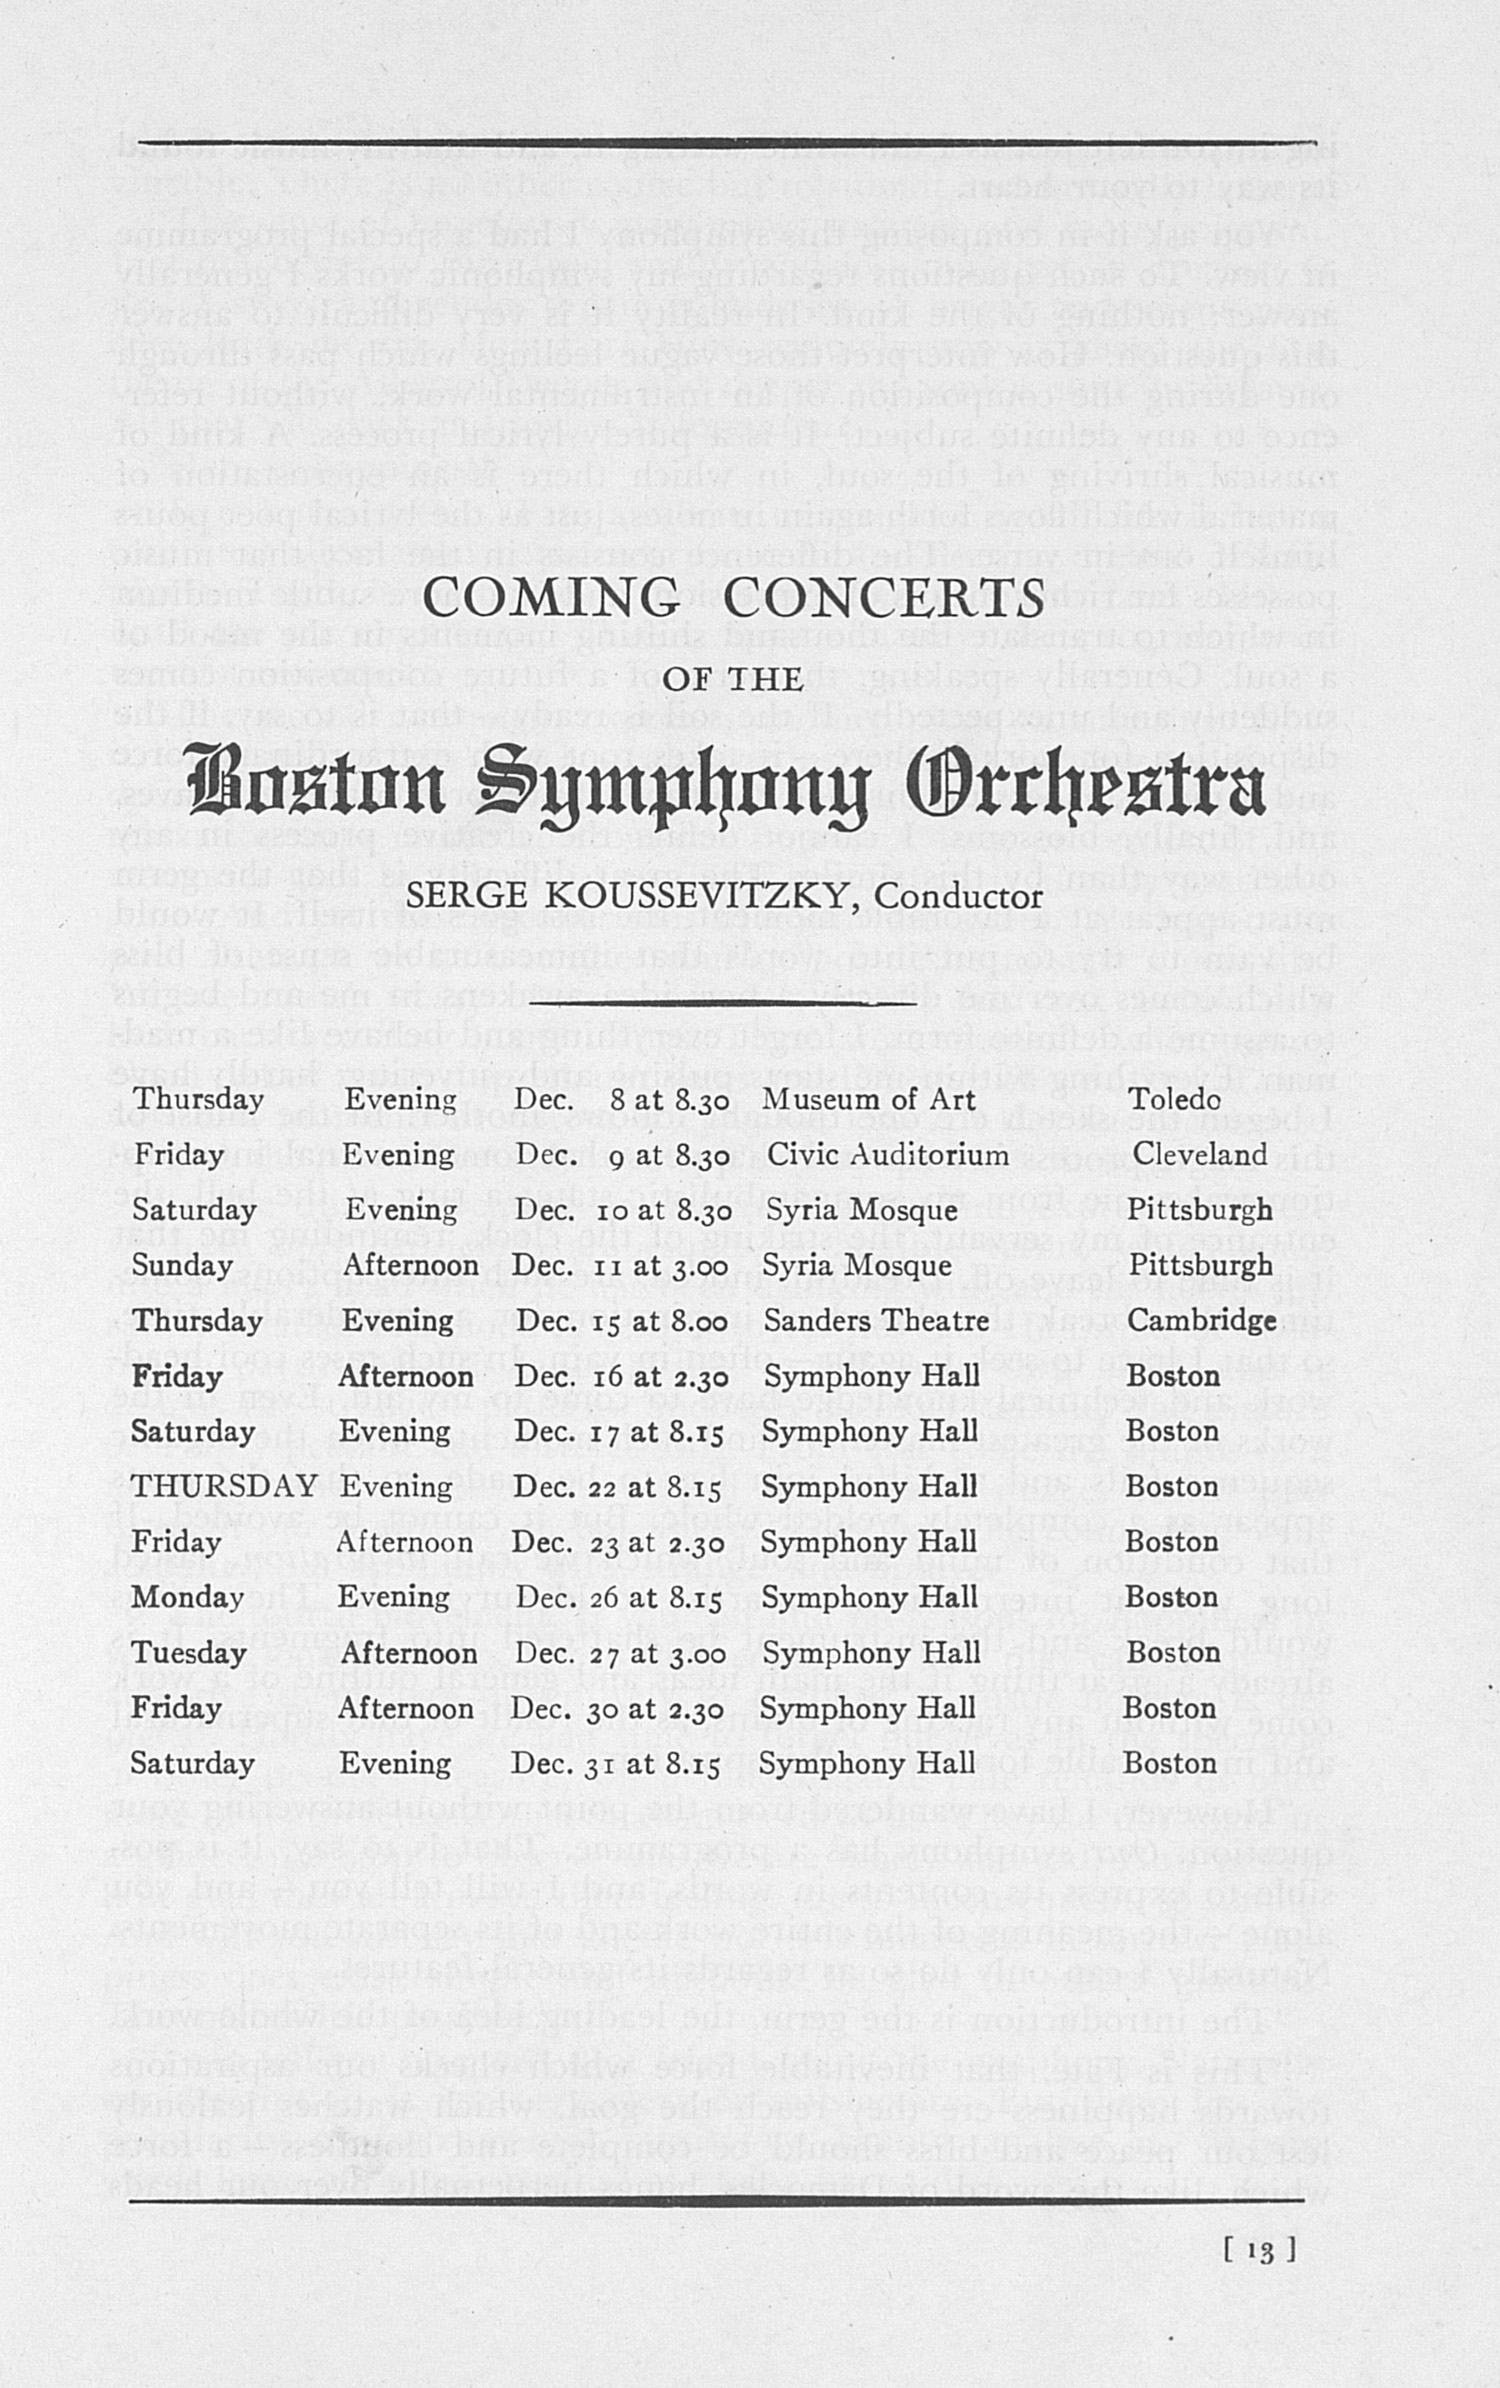 UMS Concert Program, December 7: Sixtieth Annual Choral Union Concert Series - 1938 image